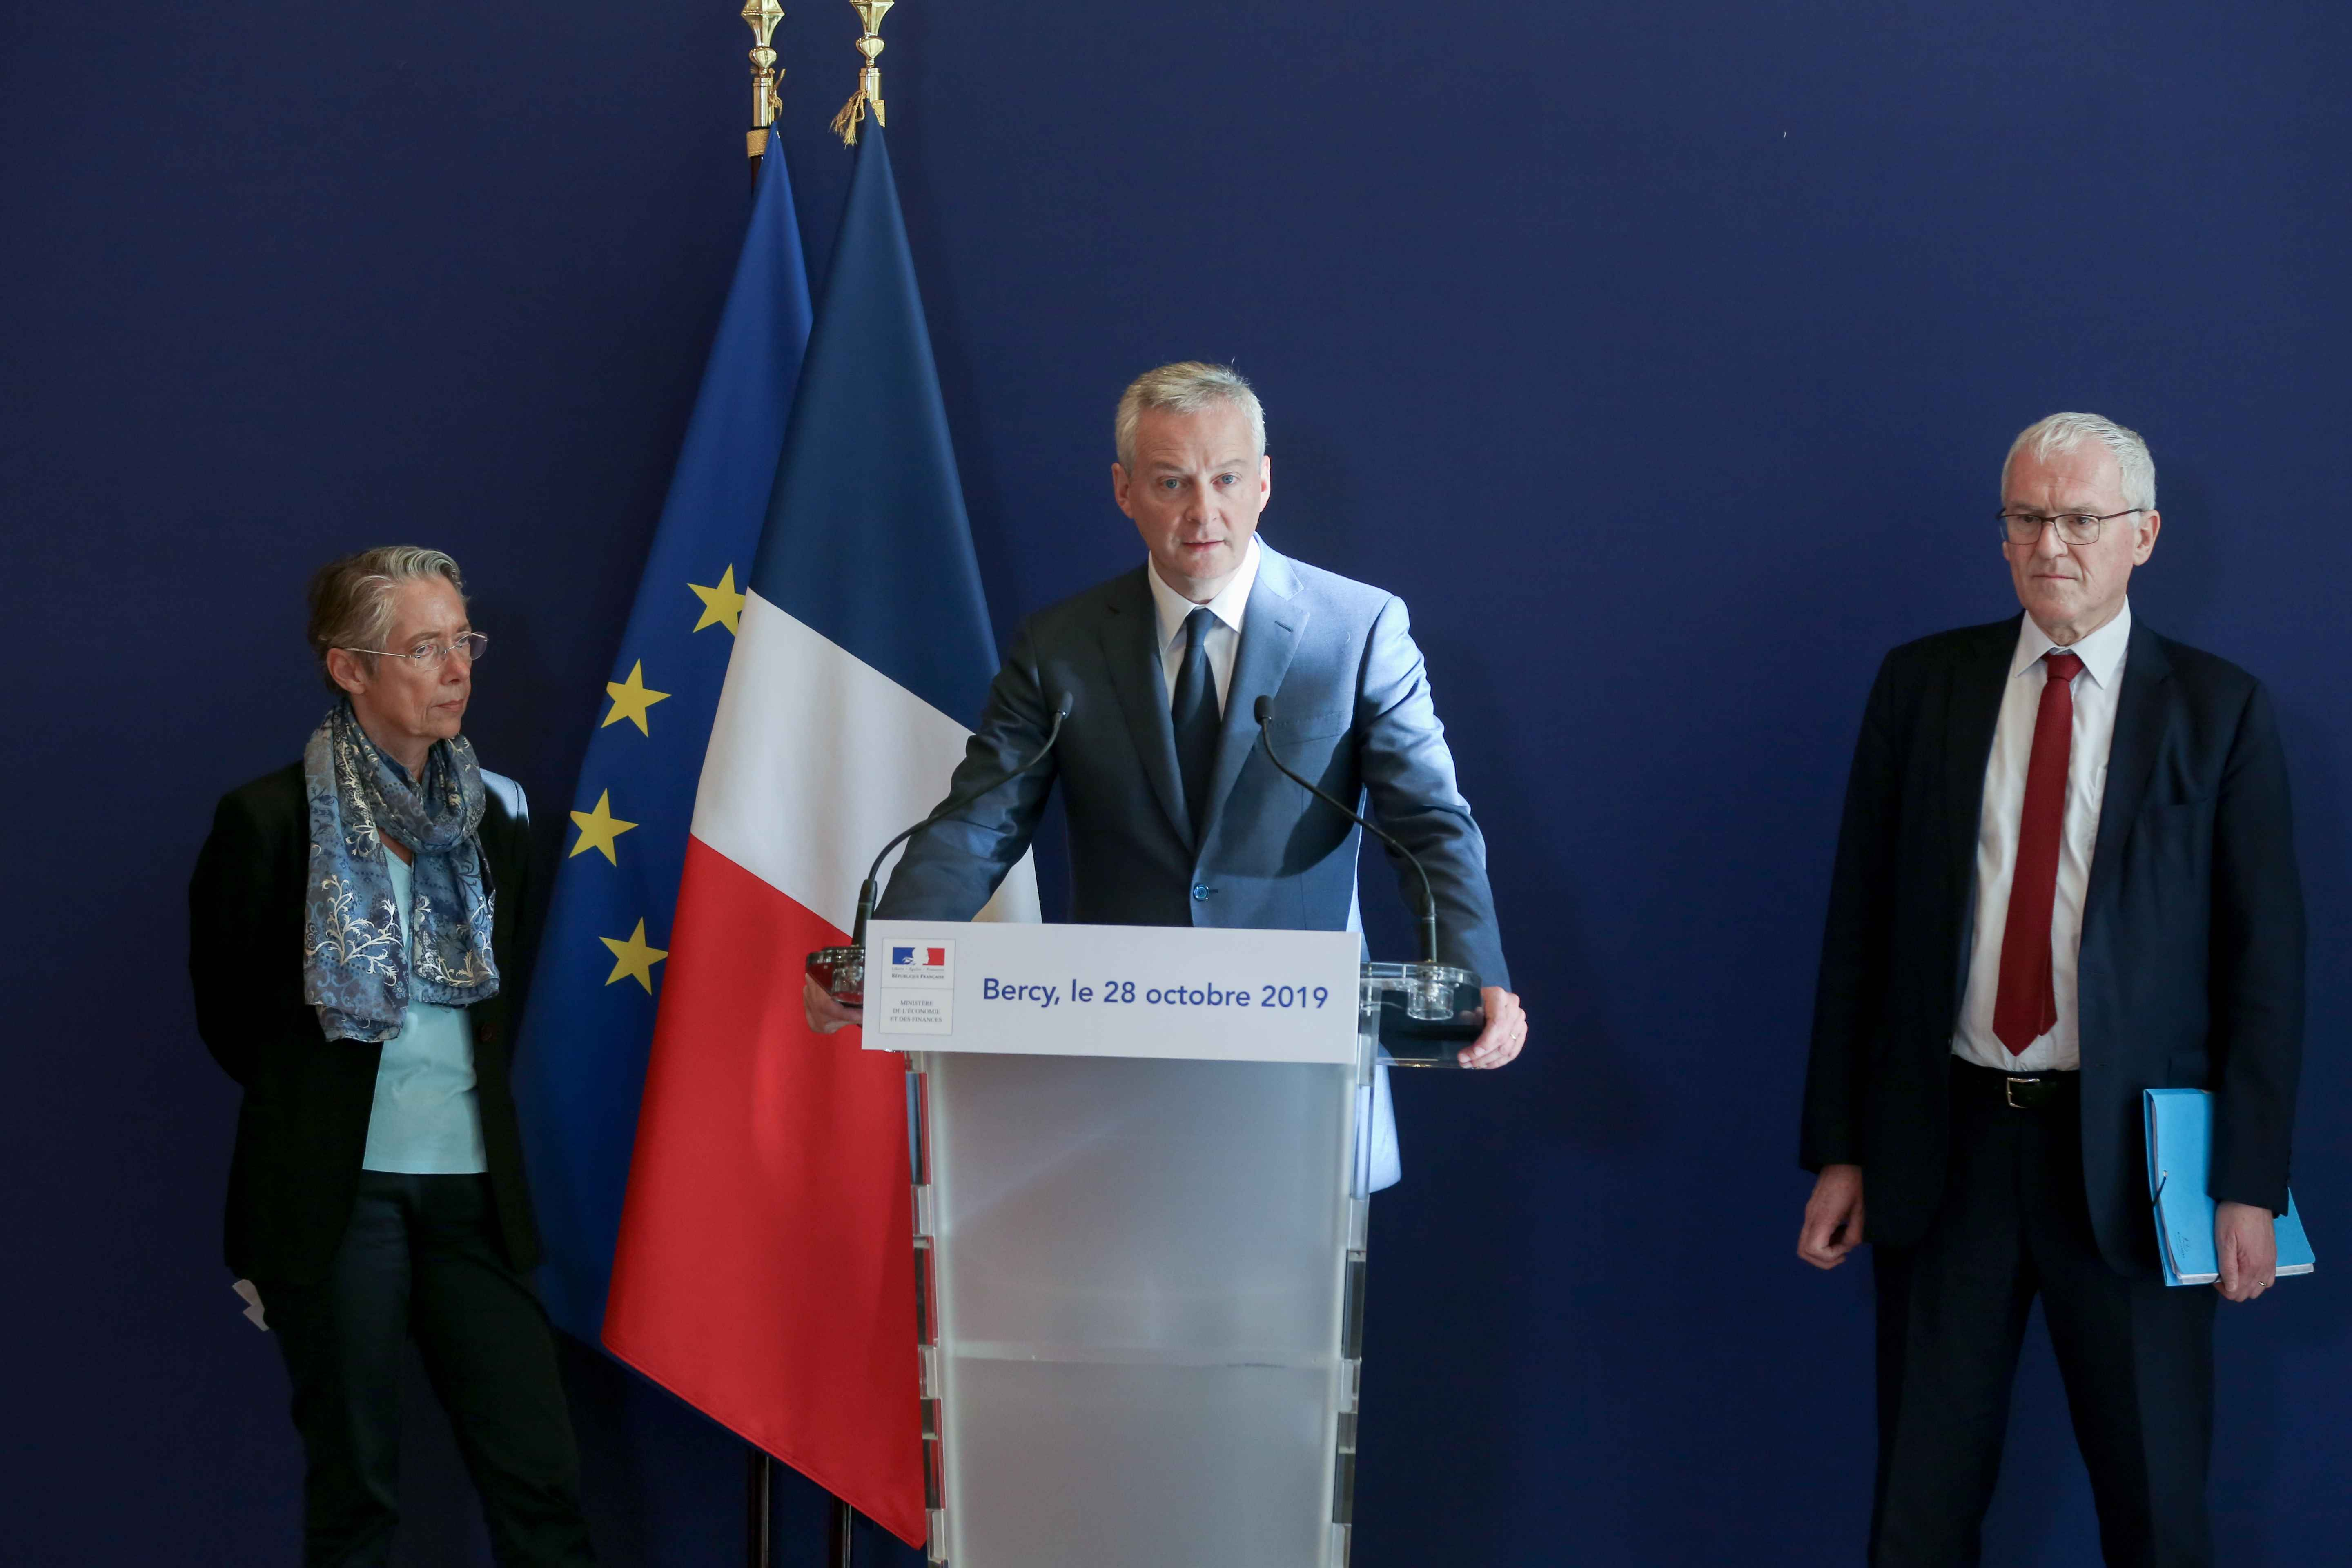 (From L to R) French Minister for the Ecological and Inclusive Transition Elisabeth Borne, French Finance and Economy Minister Bruno Le Maire and French energy giant EDF's CEO Jean-Bernard Levy give a joint press conference to present a report concerning t